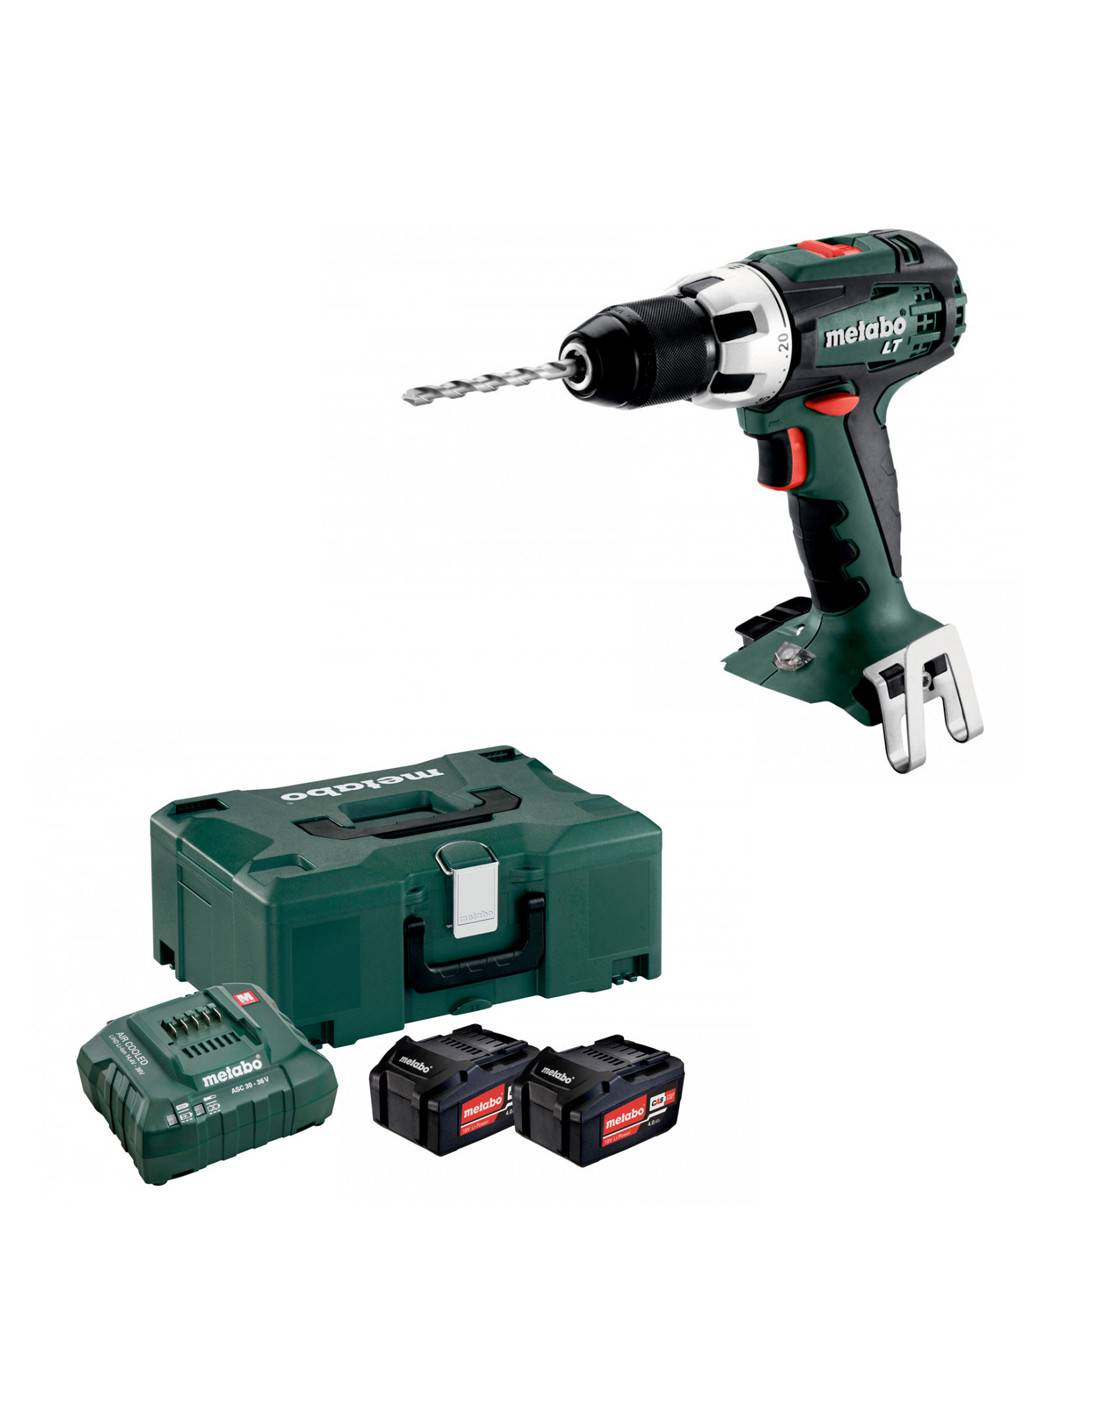 Perceuse visseuse 18V BS 18 LT METABO en coffret METALOC